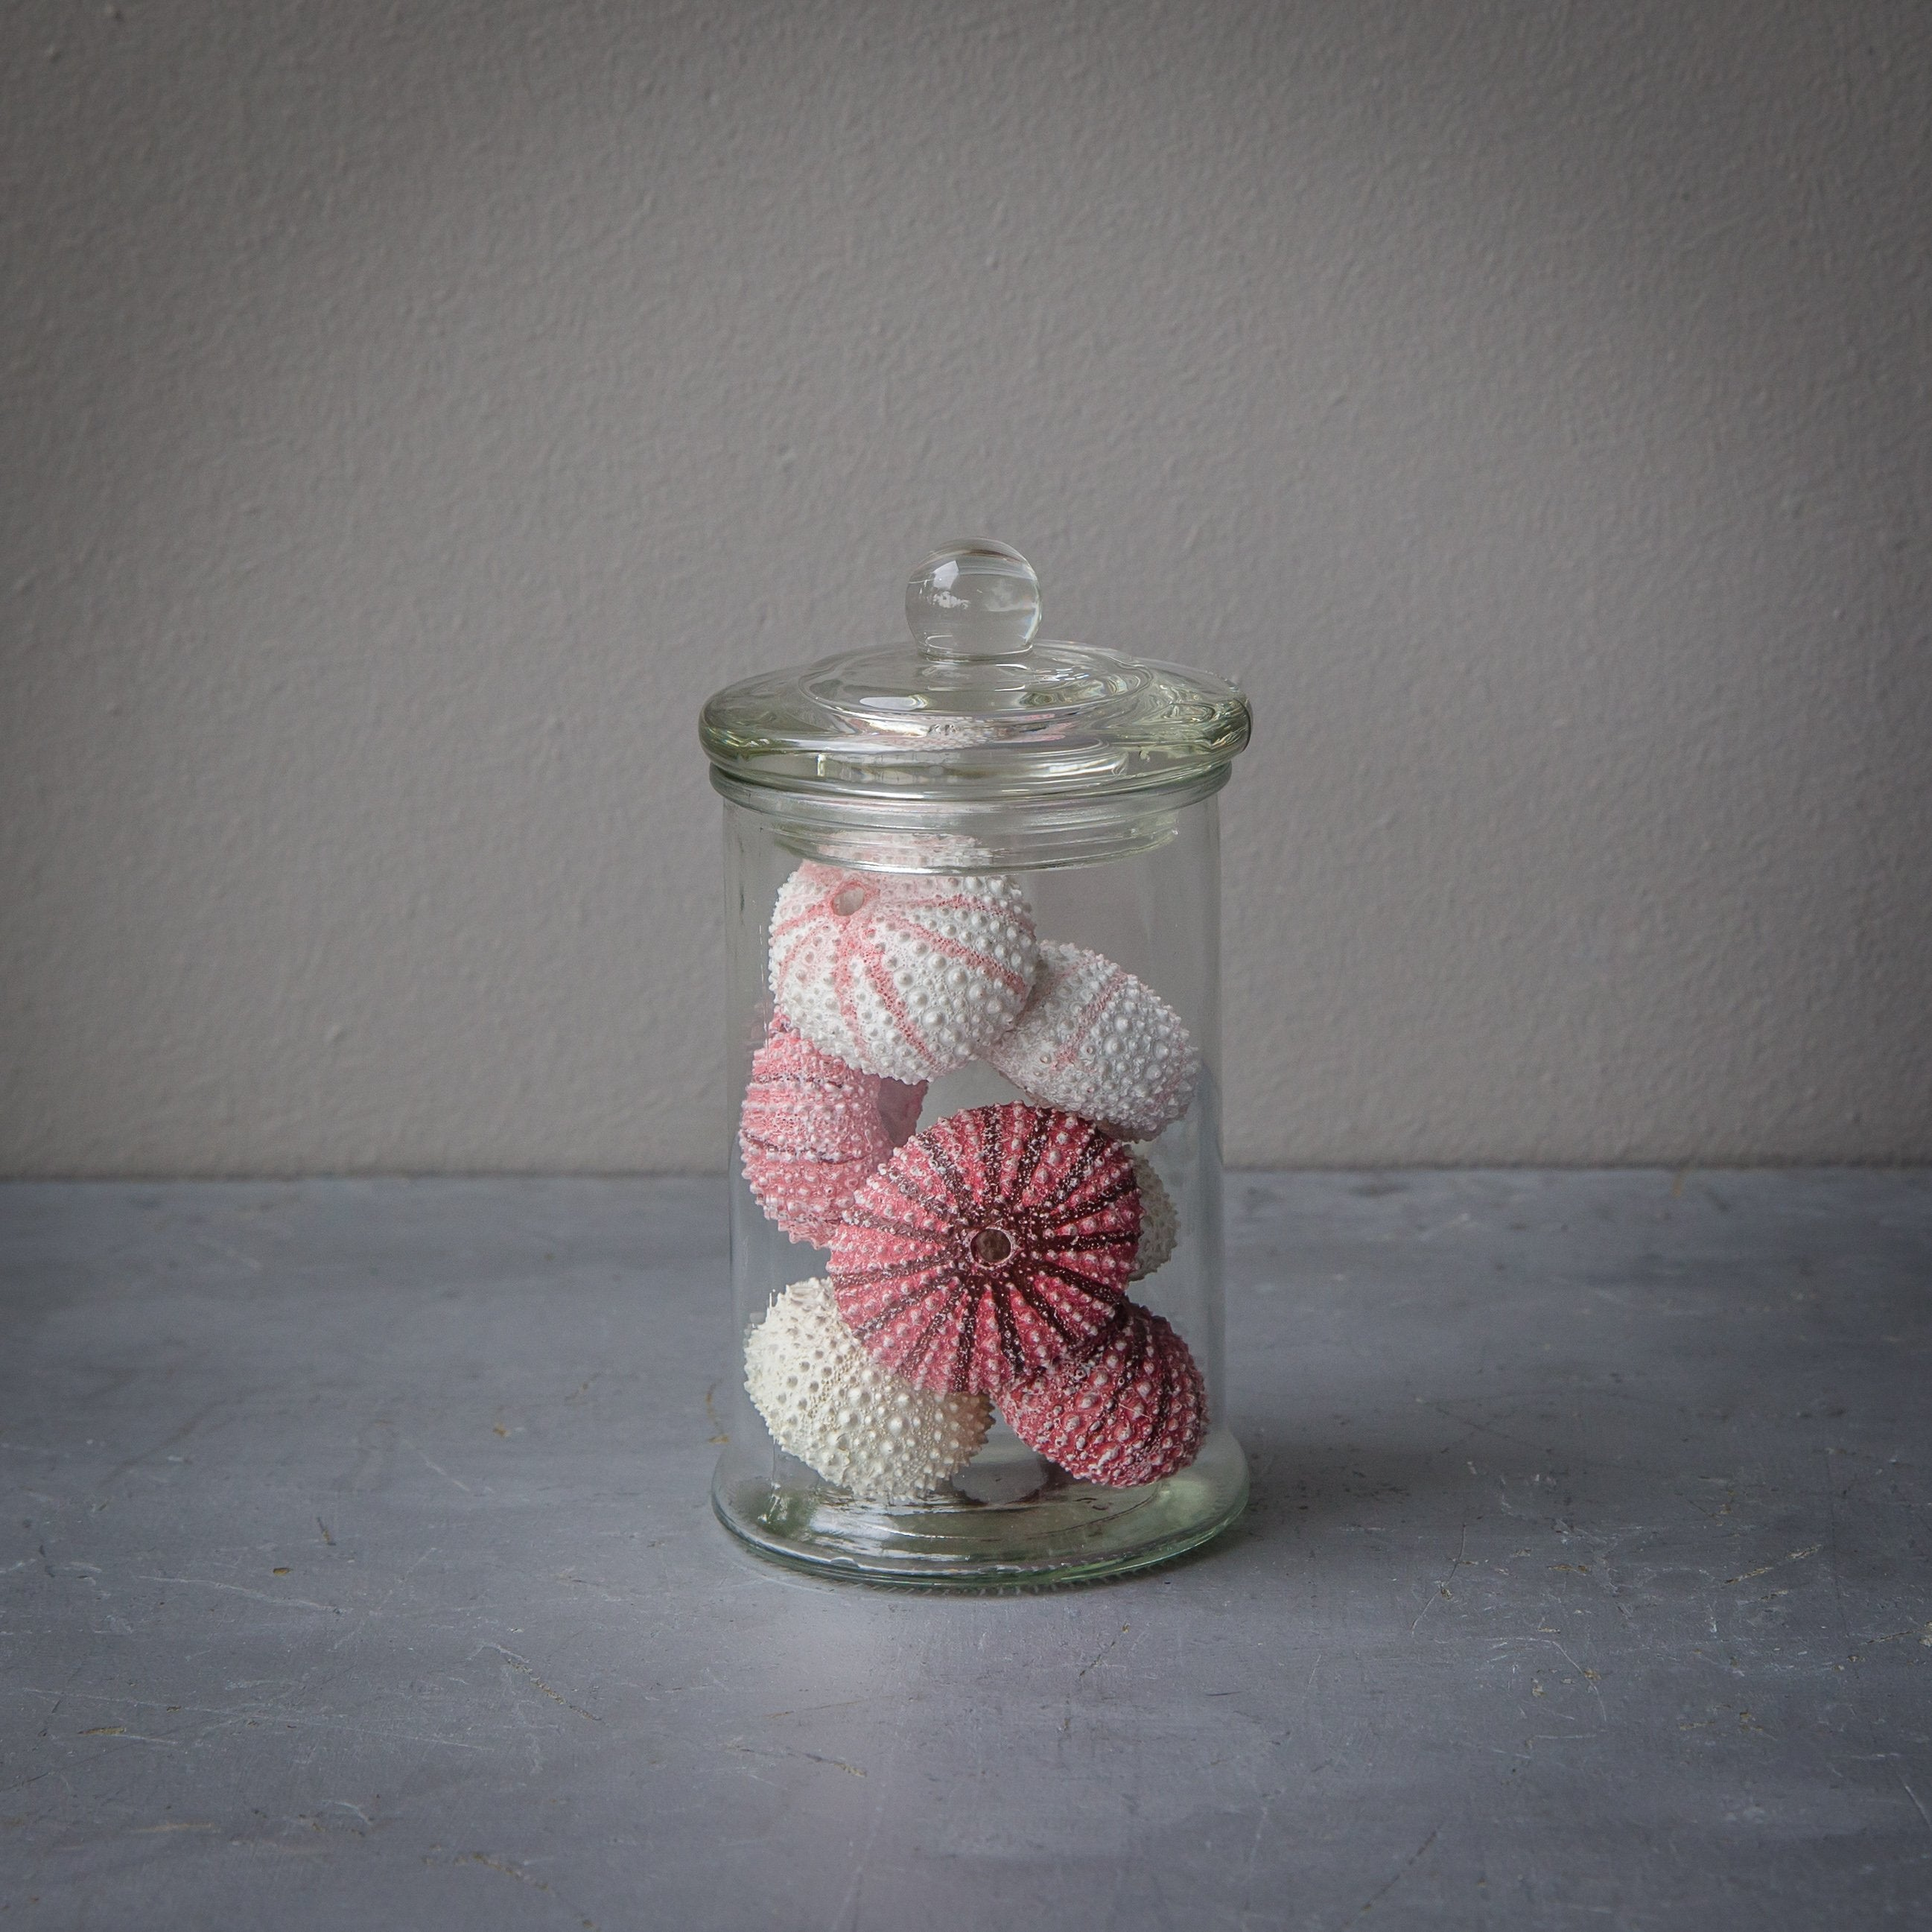 Small Jar with Tiny Blush Sea Urchins